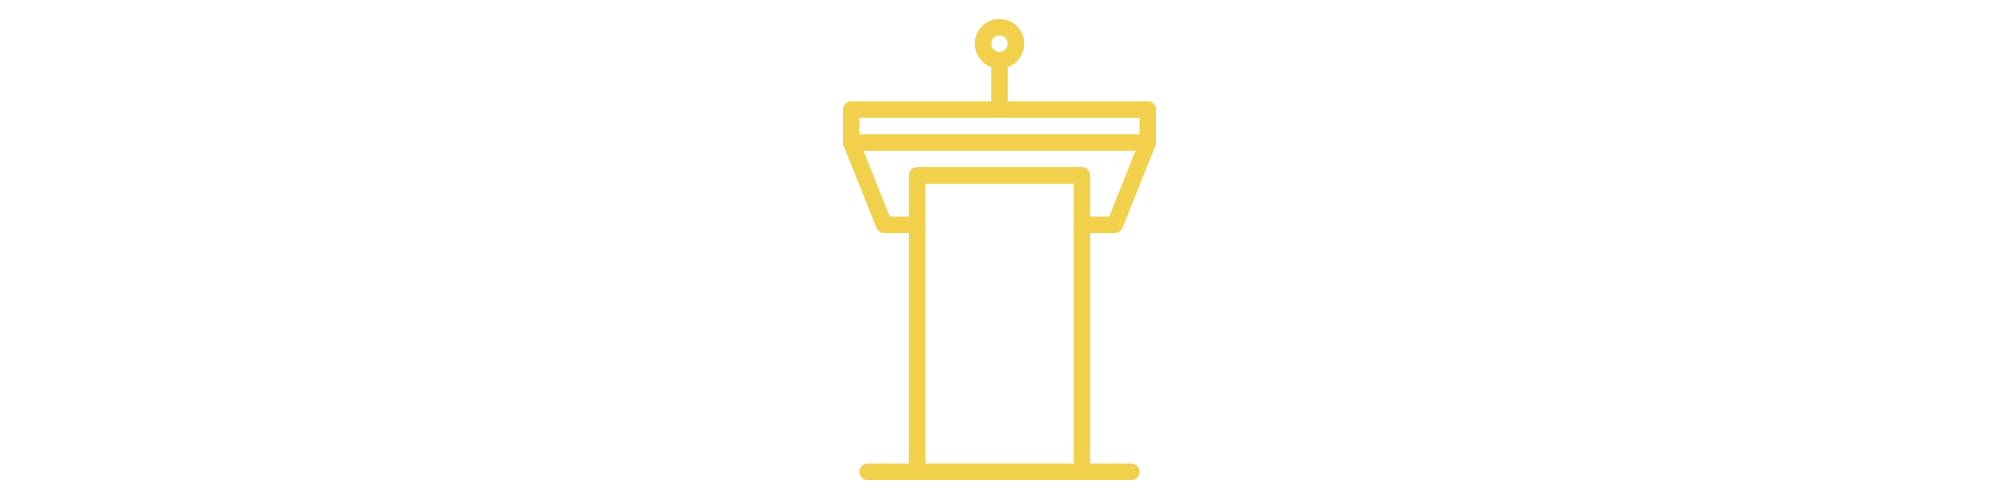 podium-icon.png